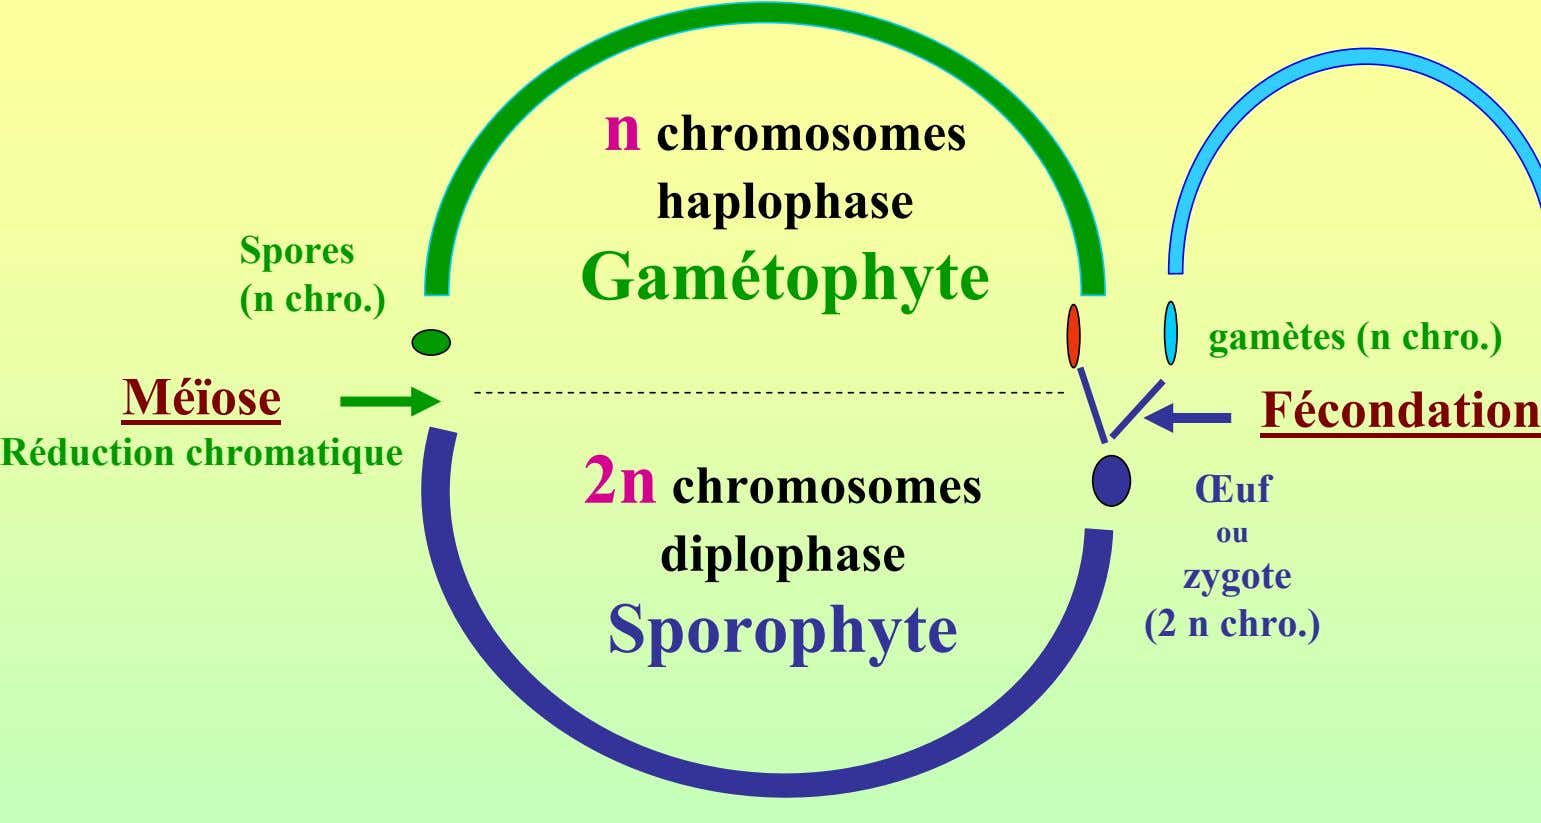 n chromosomes haplophase Spores Gamétophyte (n chro.) gamètes (n chro.) Méïose Fécondation Réduction